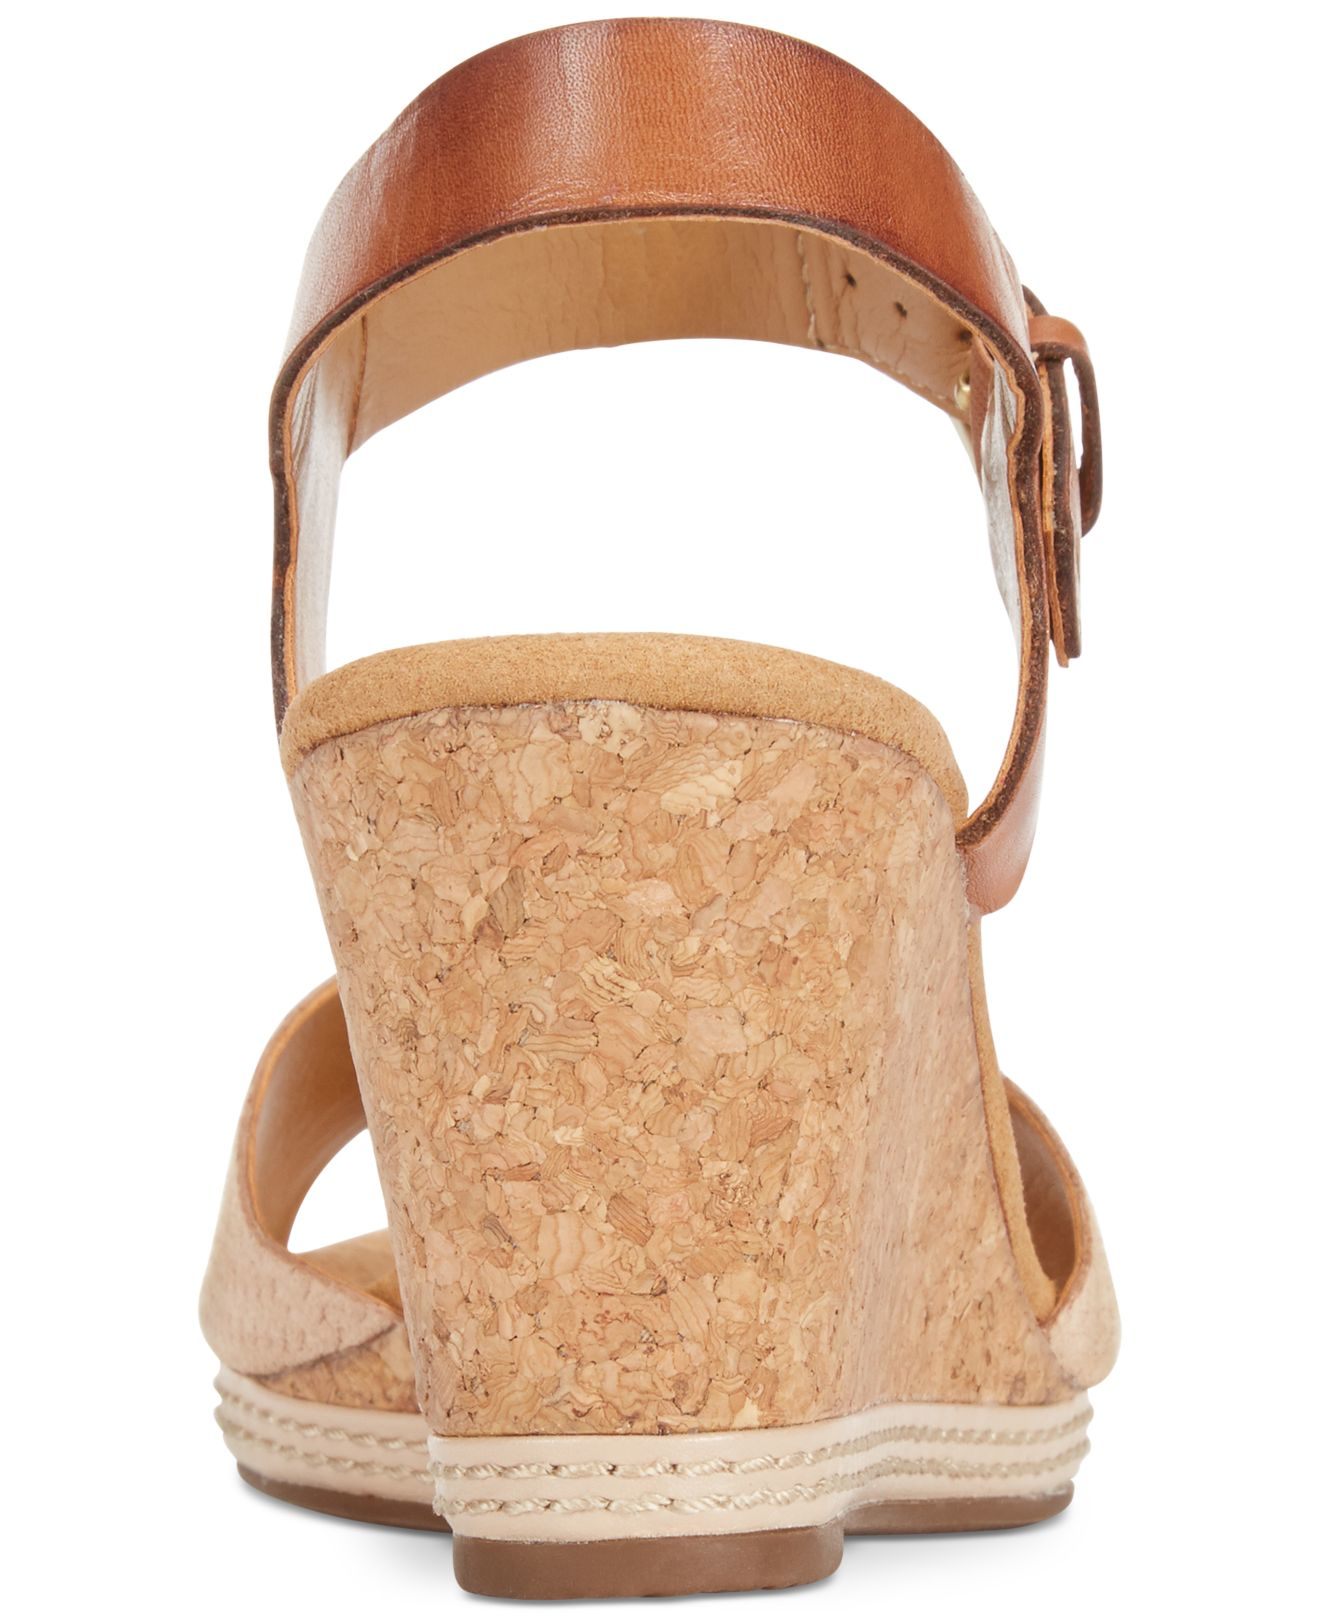 33216f42ae1 Lyst - Clarks Collection Women s Helio Jet Wedge Sandals in Natural